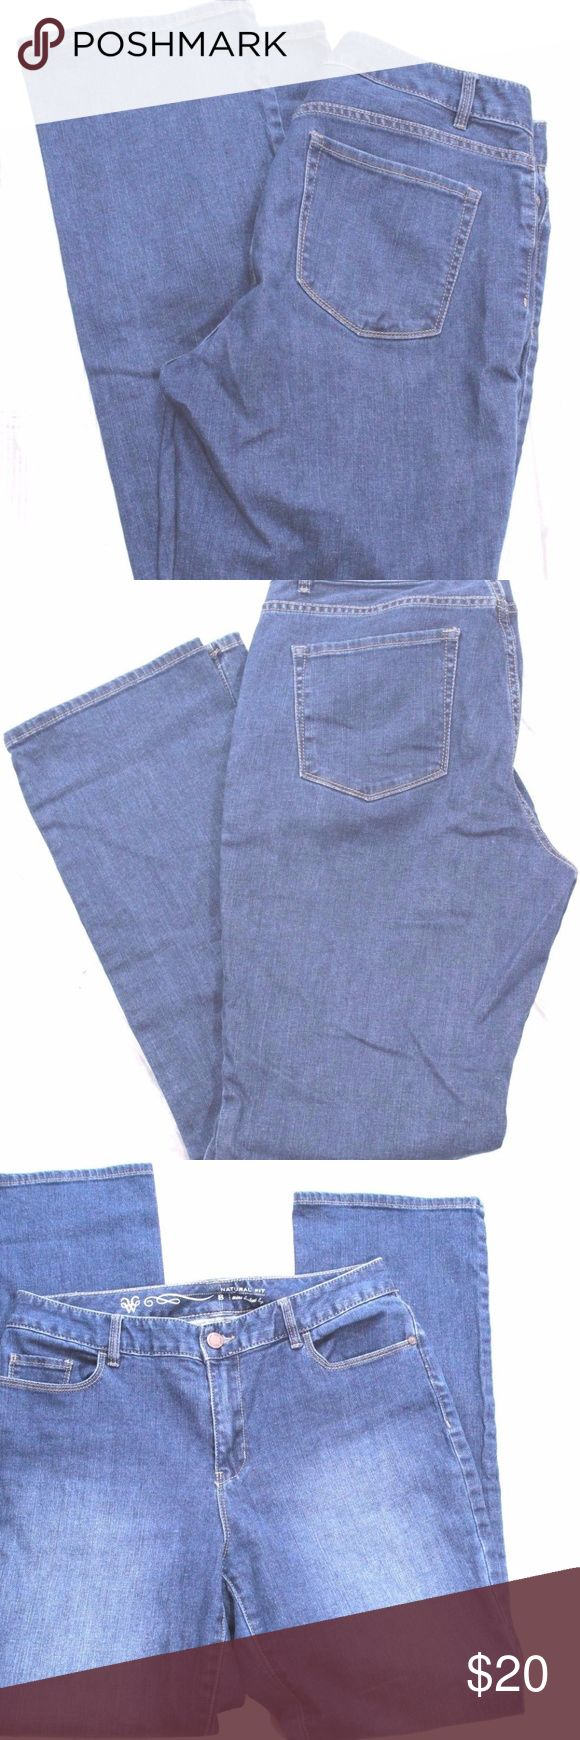 """Coldwater Creek Womens Jeans Size 8 Brand: Coldwater Creek Natural  Mini Boot Cut Size: 8 Color: Blue Condition: Good Preowned Item Specifics Material:Cotton Blend Waist:16"""" Hip: 19"""" Length: 42"""" Inseam: 31"""" Rise:10"""" Coldwater Creek Jeans Boot Cut"""